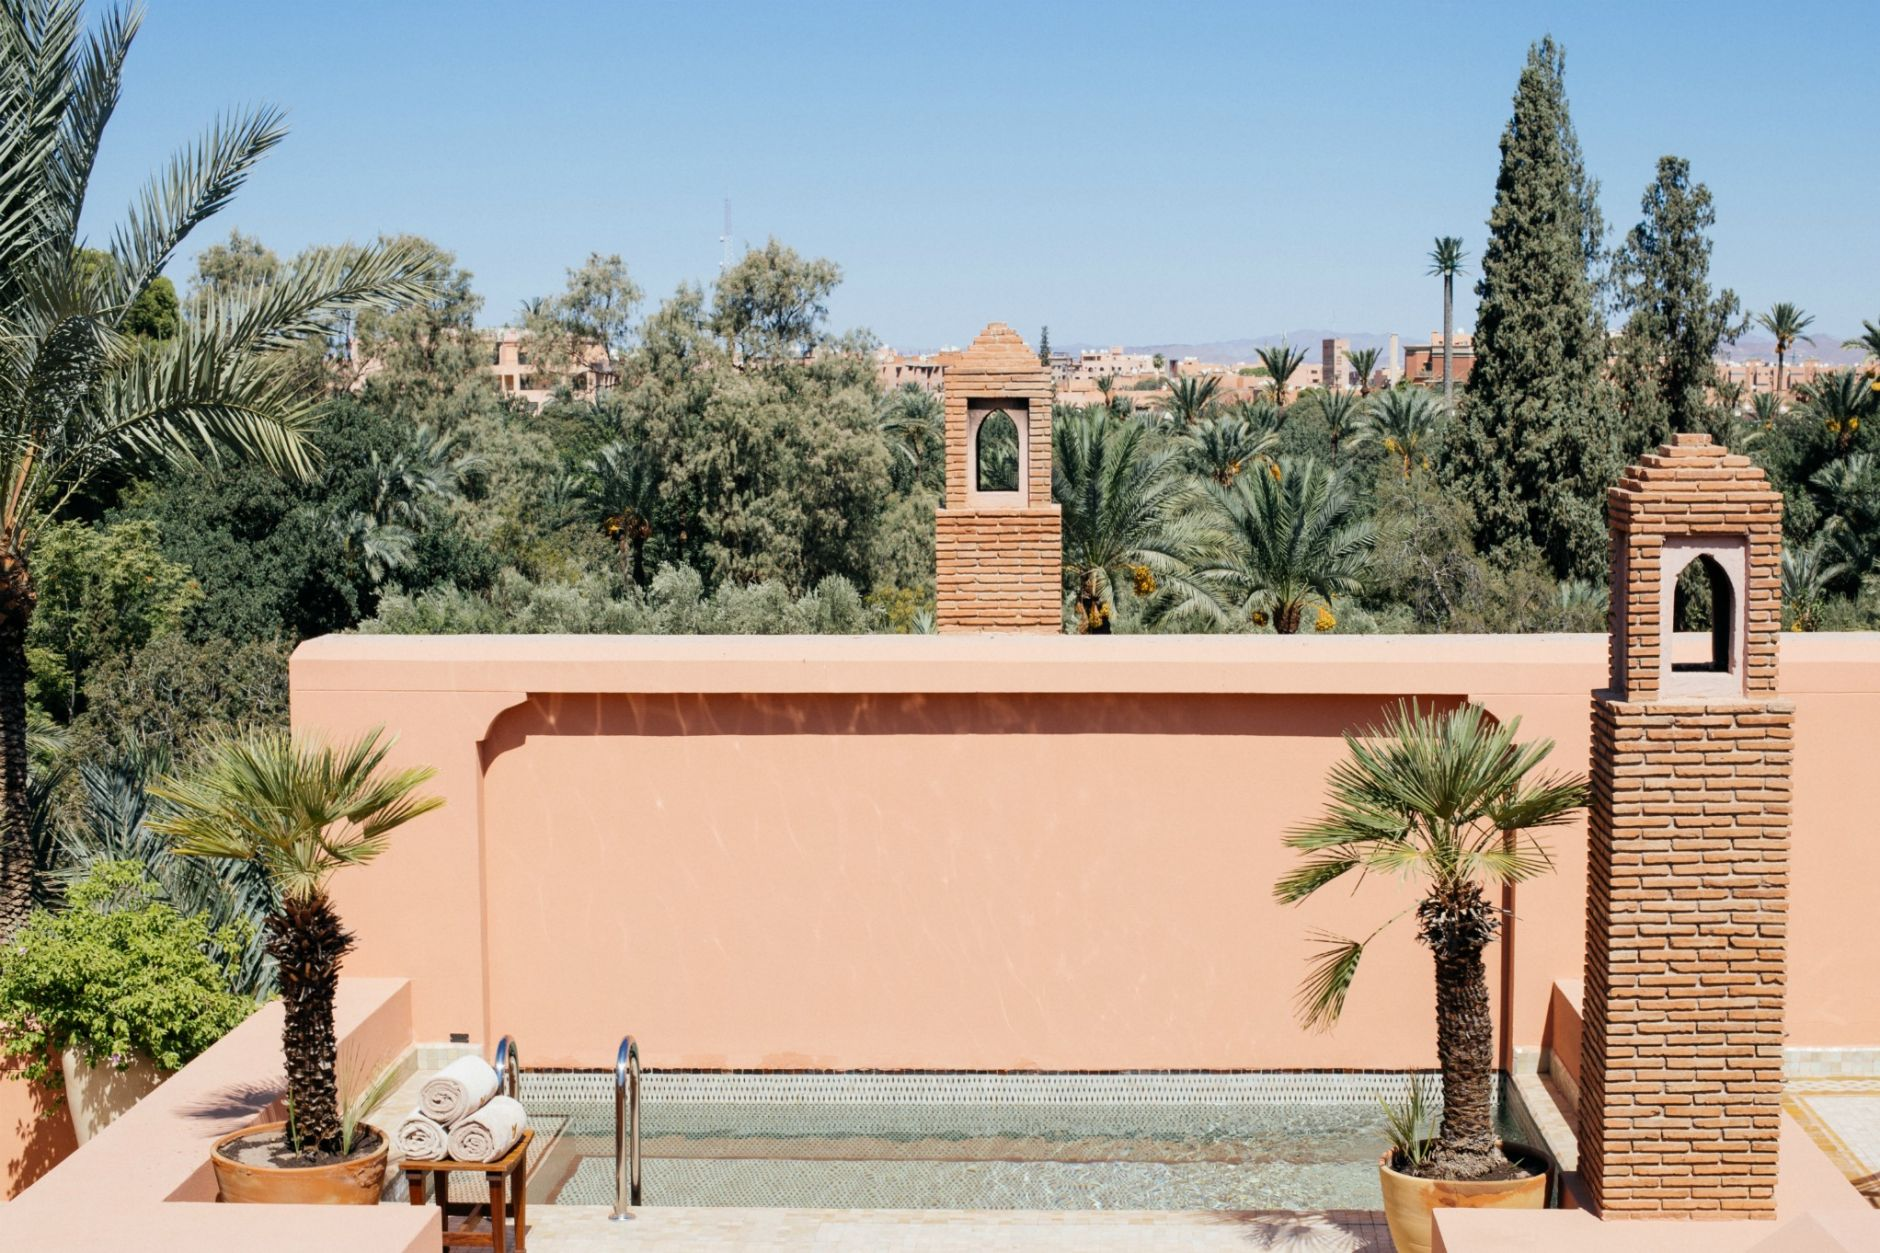 royal-mansour-hotel-luxury-marrakesch-marrakesh-morocco-edisa-shahini-disicouture-blog-04